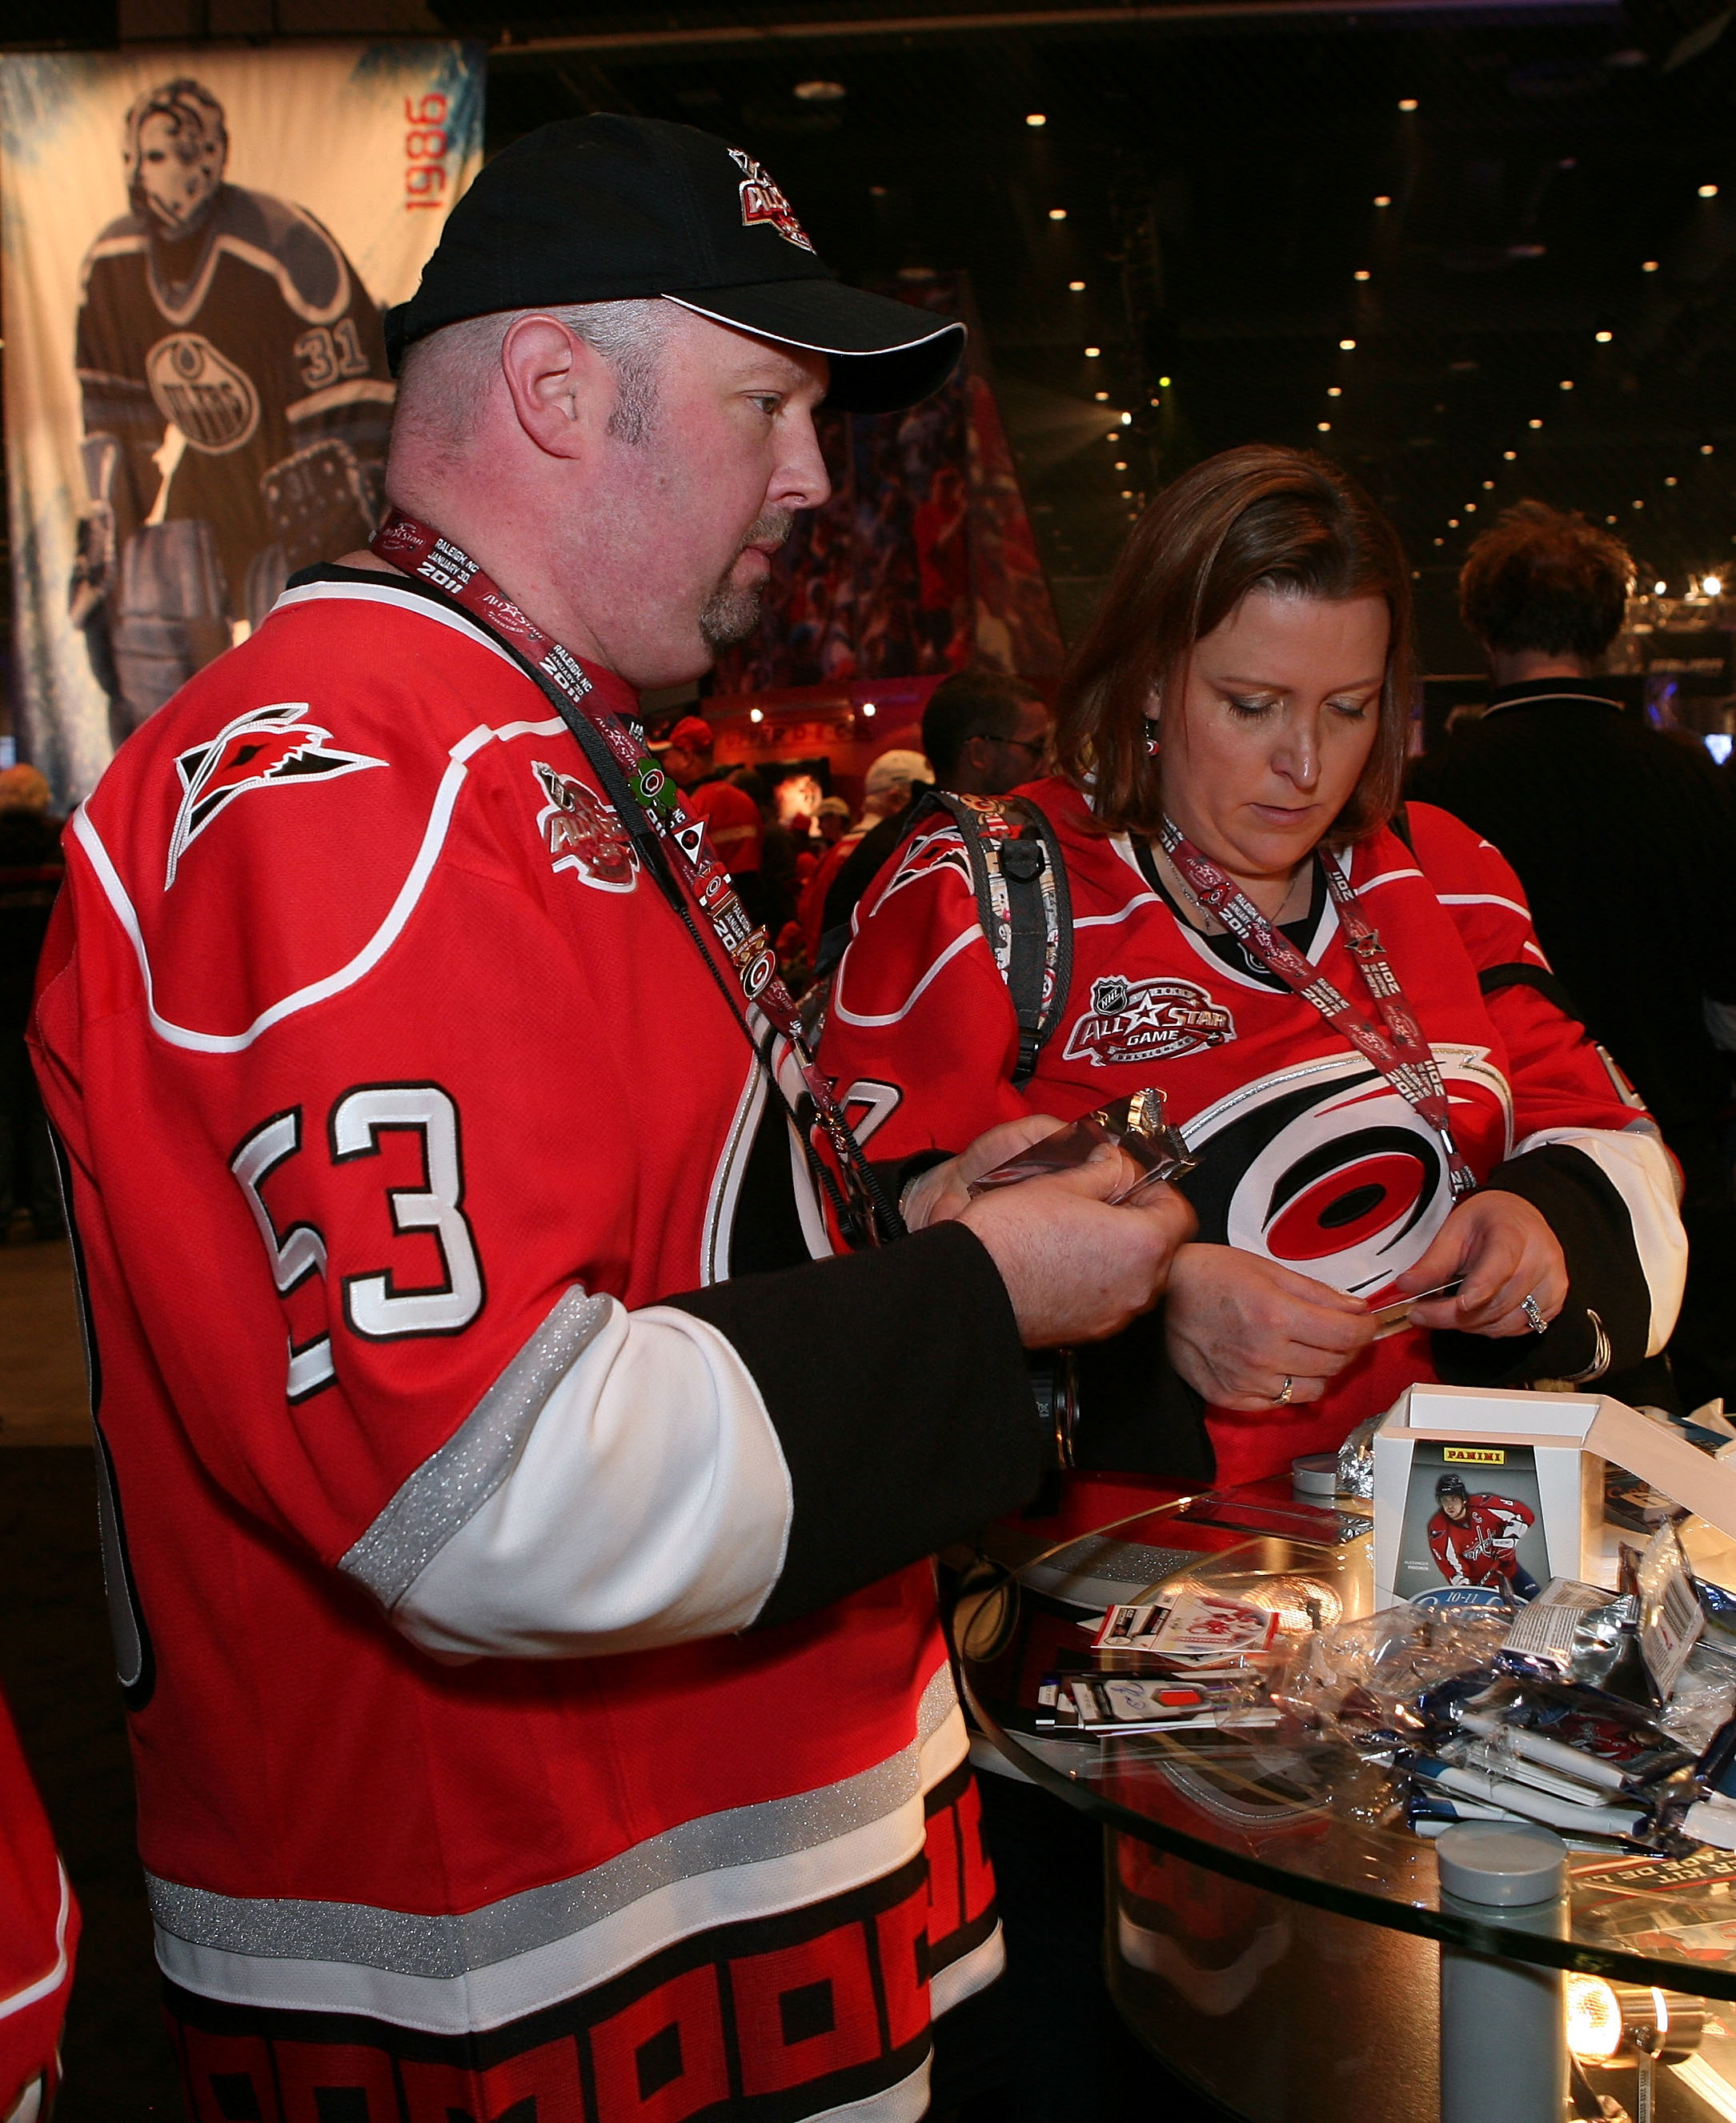 RALEIGH, NC - JANUARY 28:  Fans go through packs of NHL trading cards inside the NHL Fan Fair part of 2011 NHL All-Star Weekend at the Raleigh Convention Center on January 28, 2011 in Raleigh, North Carolina.  (Photo by Bruce Bennett/Getty Images)